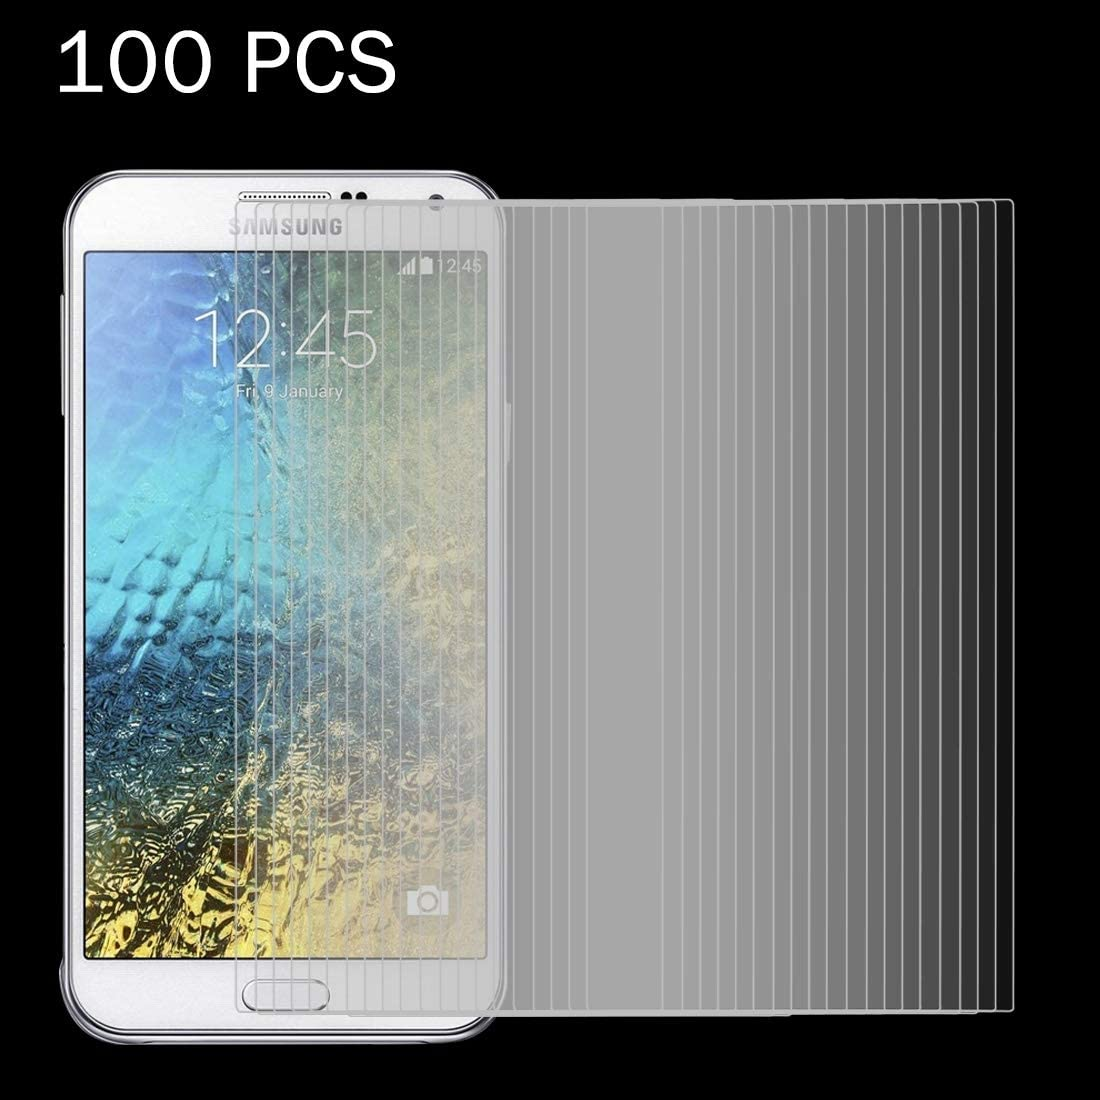 HUFAN 100 PCS for Galaxy E7 E700 0.26mm 9H Surface Hardness 2.5D Explosion-Proof Tempered Glass Screen Film Phone Glass Film